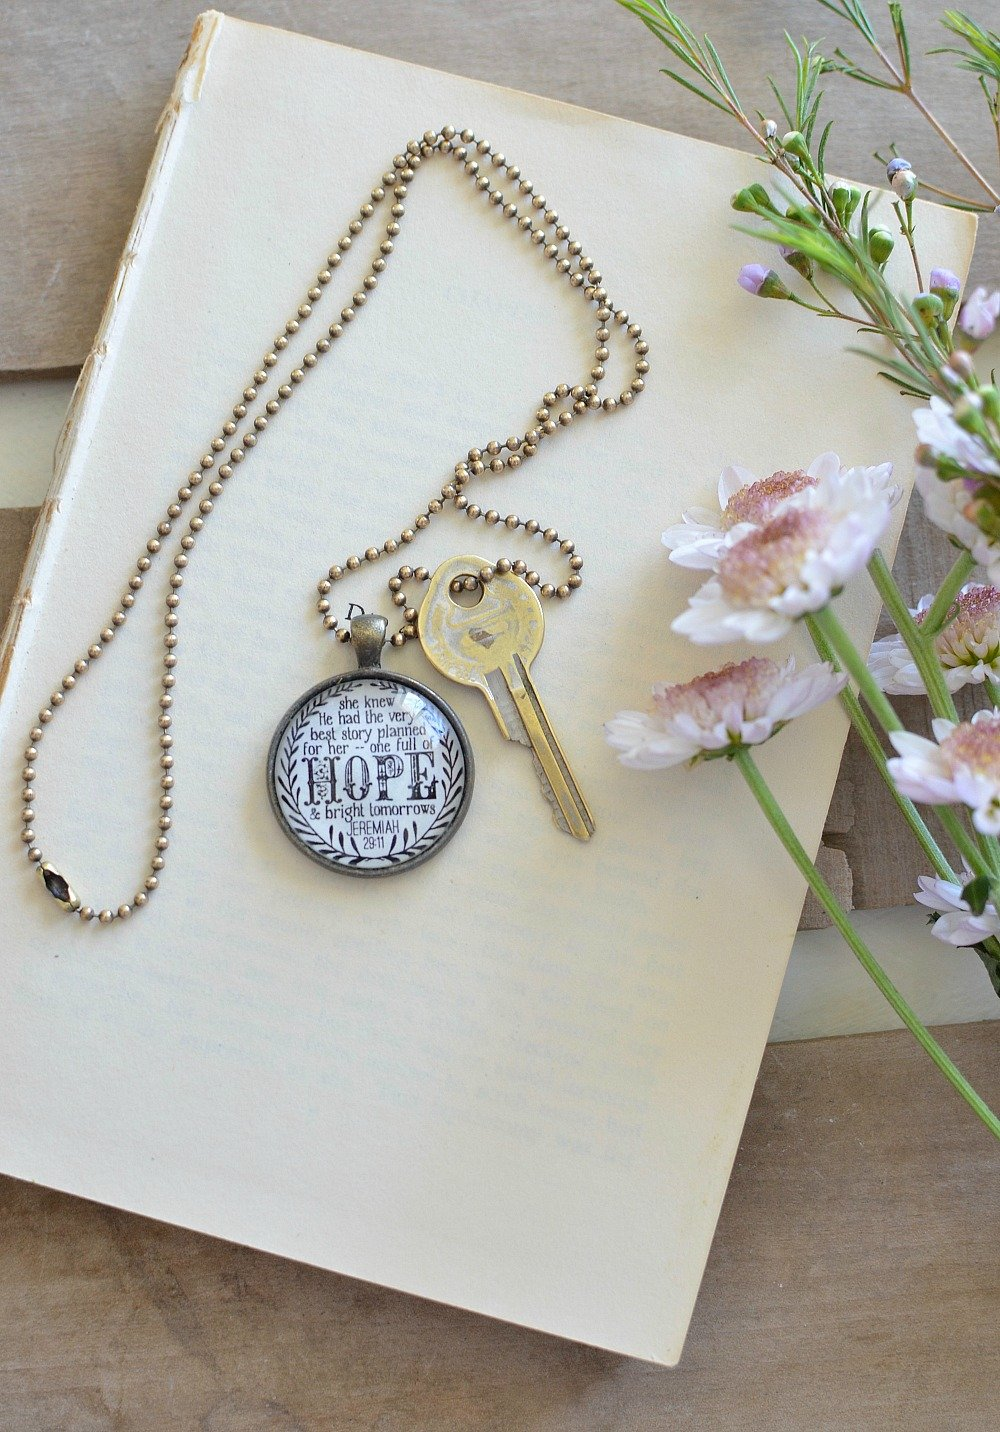 Friday Favorites: Necklace with Bible Verse